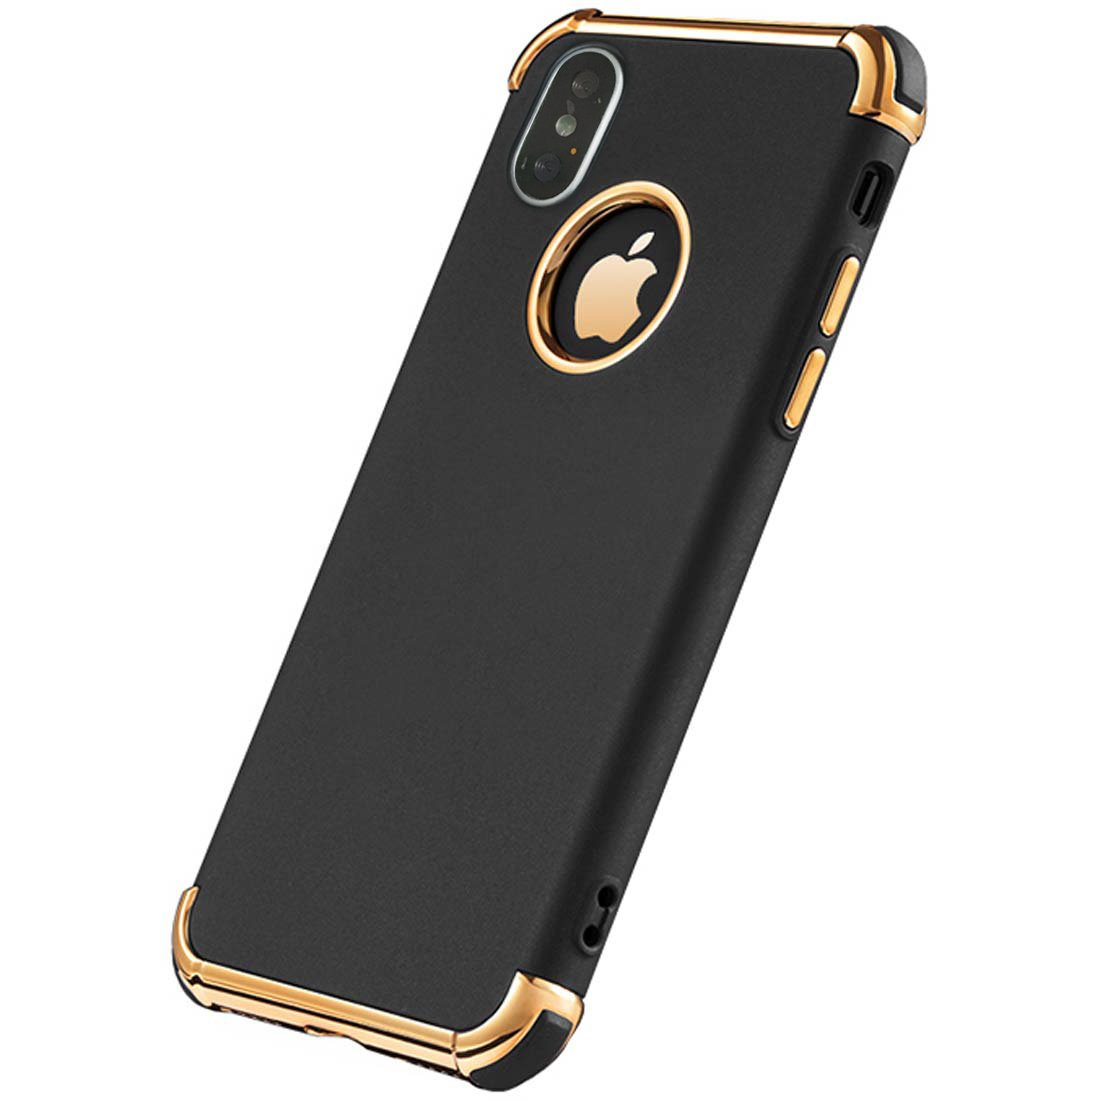 Tverghvad iPhone XR Case, Ultra Thin Flexible Soft iPhone XR Slim Case, 3 in 1 Electroplated Shockproof Elegant Phone Case Compatible with iPhone XR (6.1 inch), Black by Tverghvad